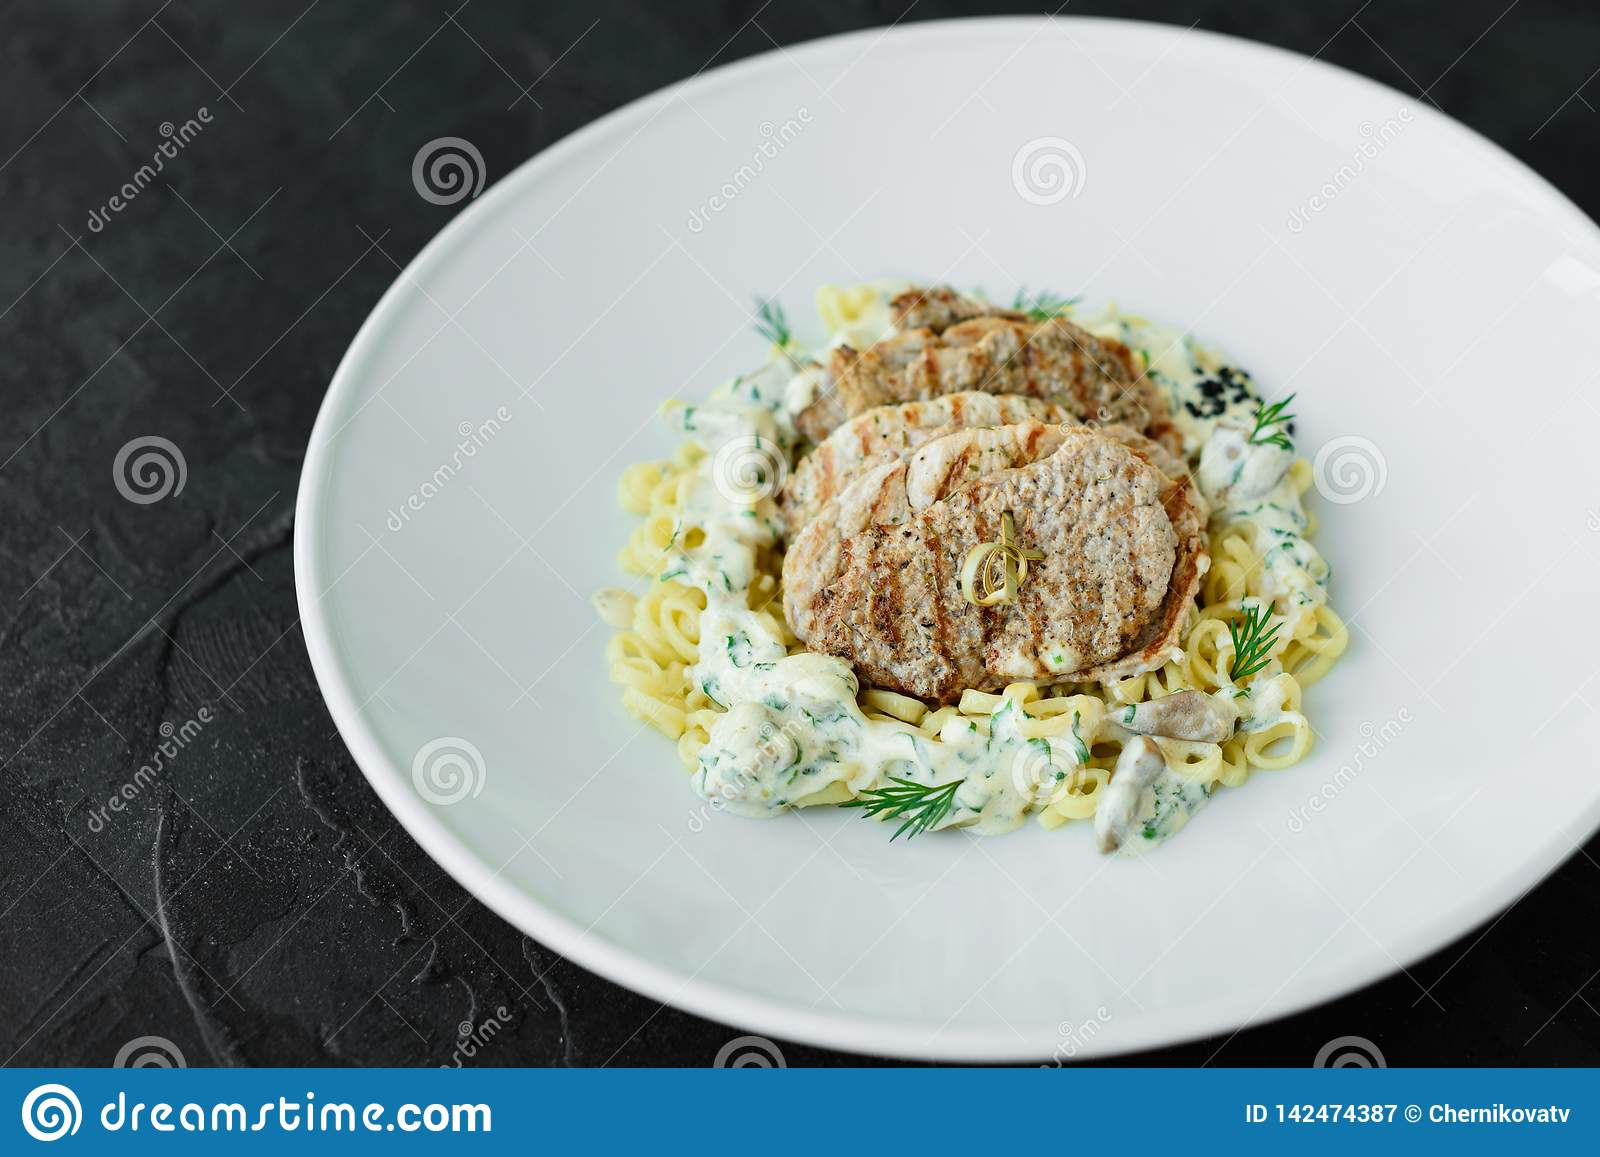 Dish with meat pieces, pasta, greens and sauce from a foie gras